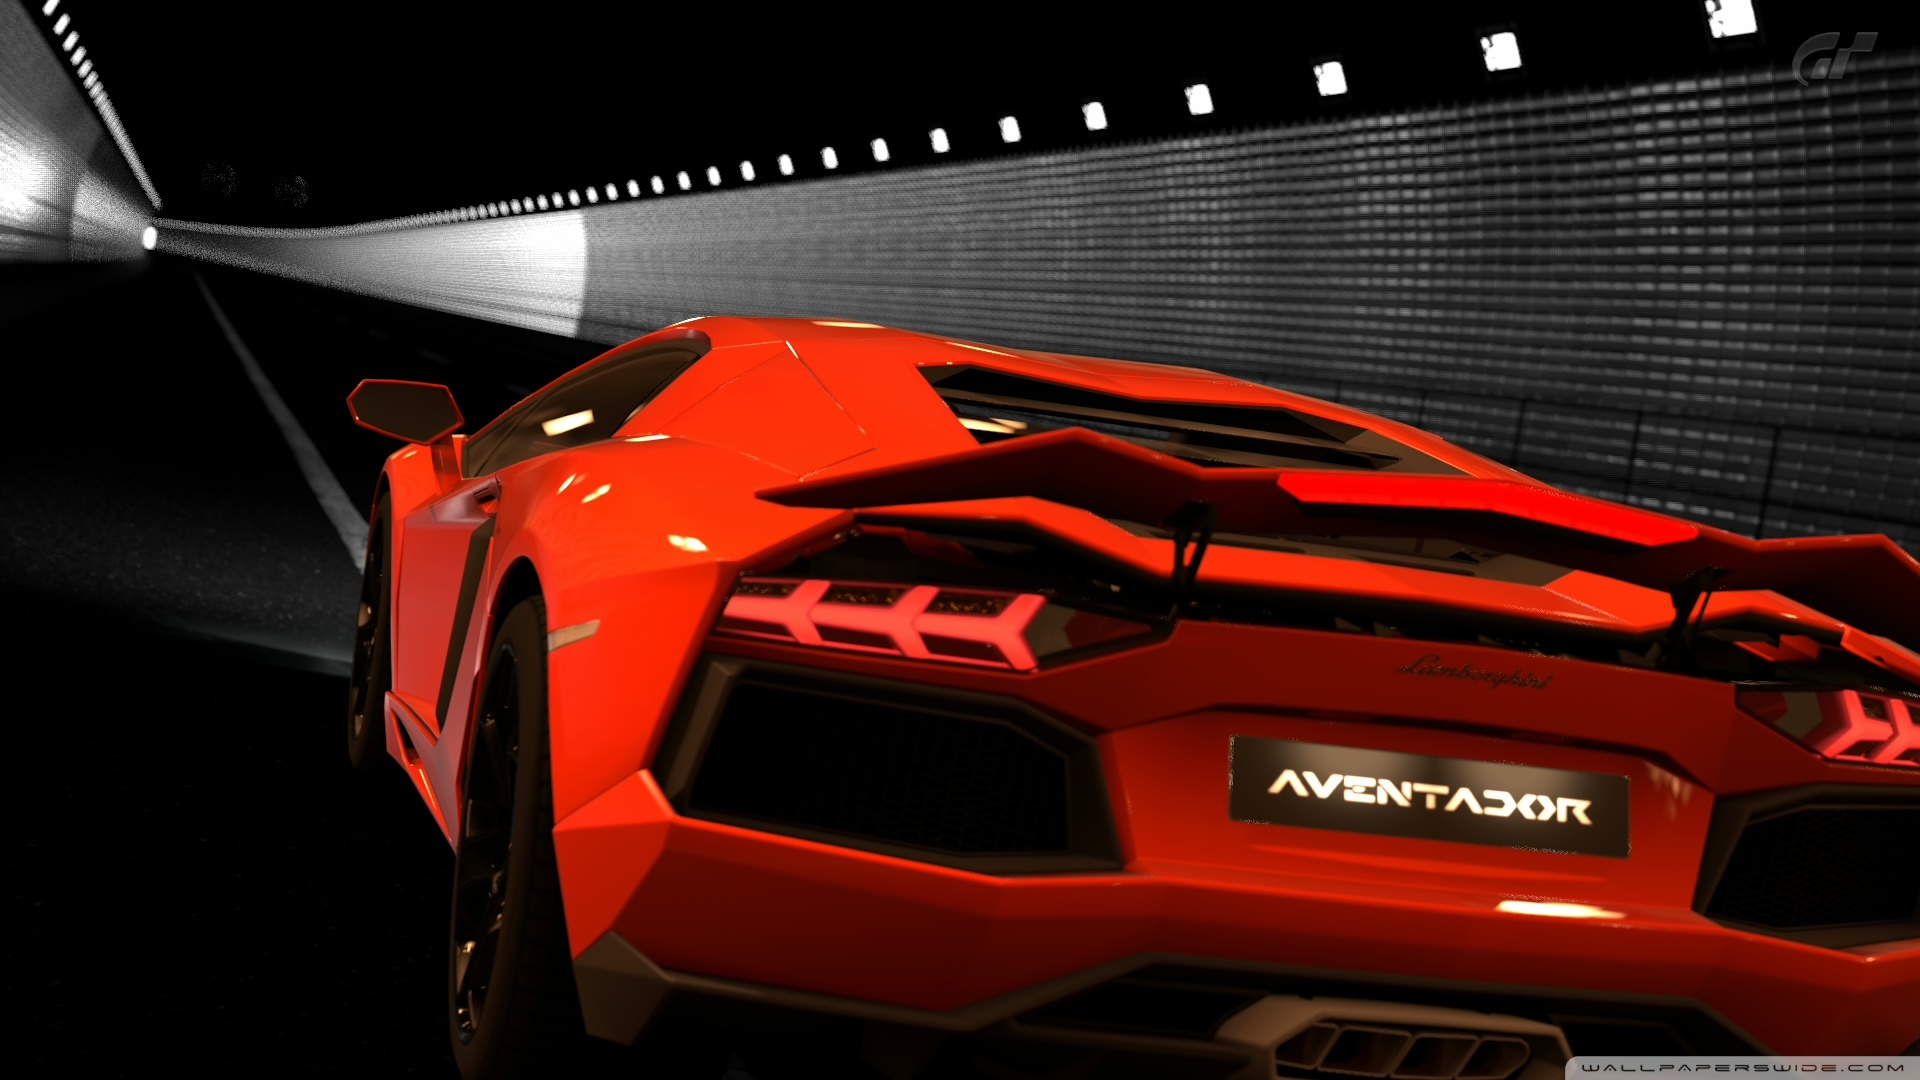 Cool Modified Cars Wallpapers Lamborghini Aventador Wallpapers Free Download